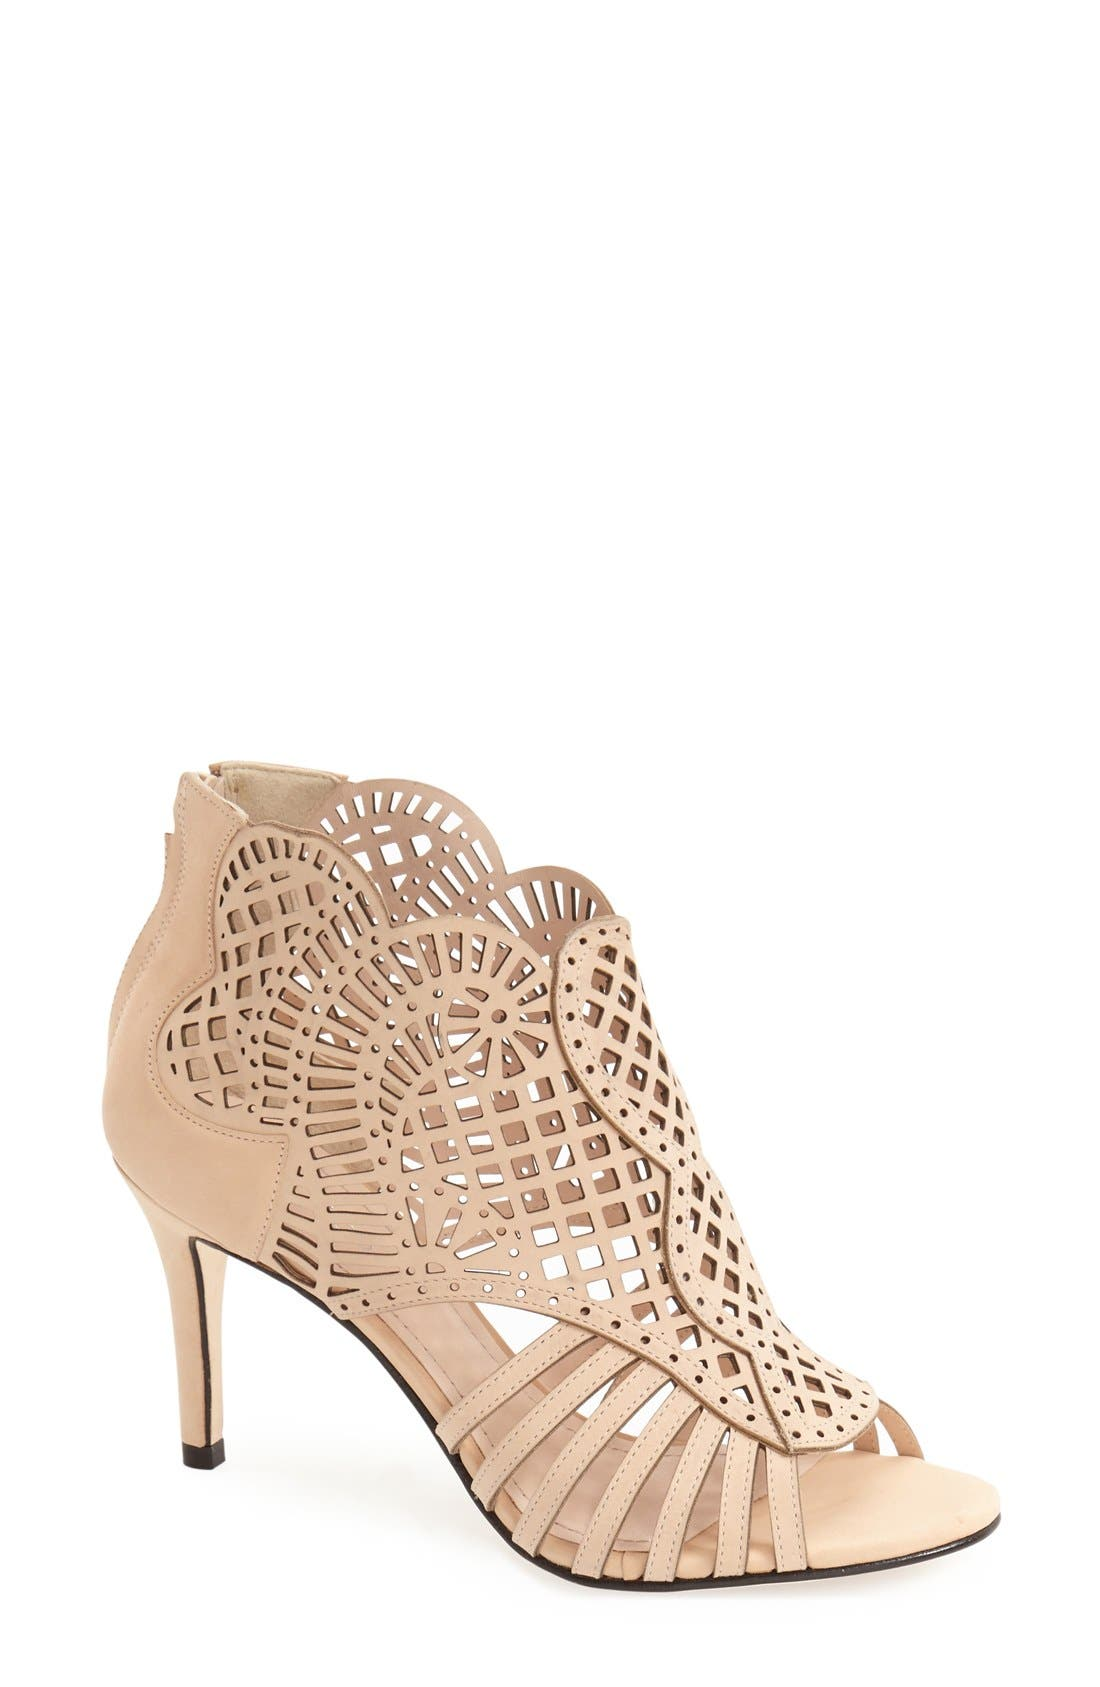 Alternate Image 1 Selected - Klub Nico 'Mirelle' Cutout Bootie (Women)